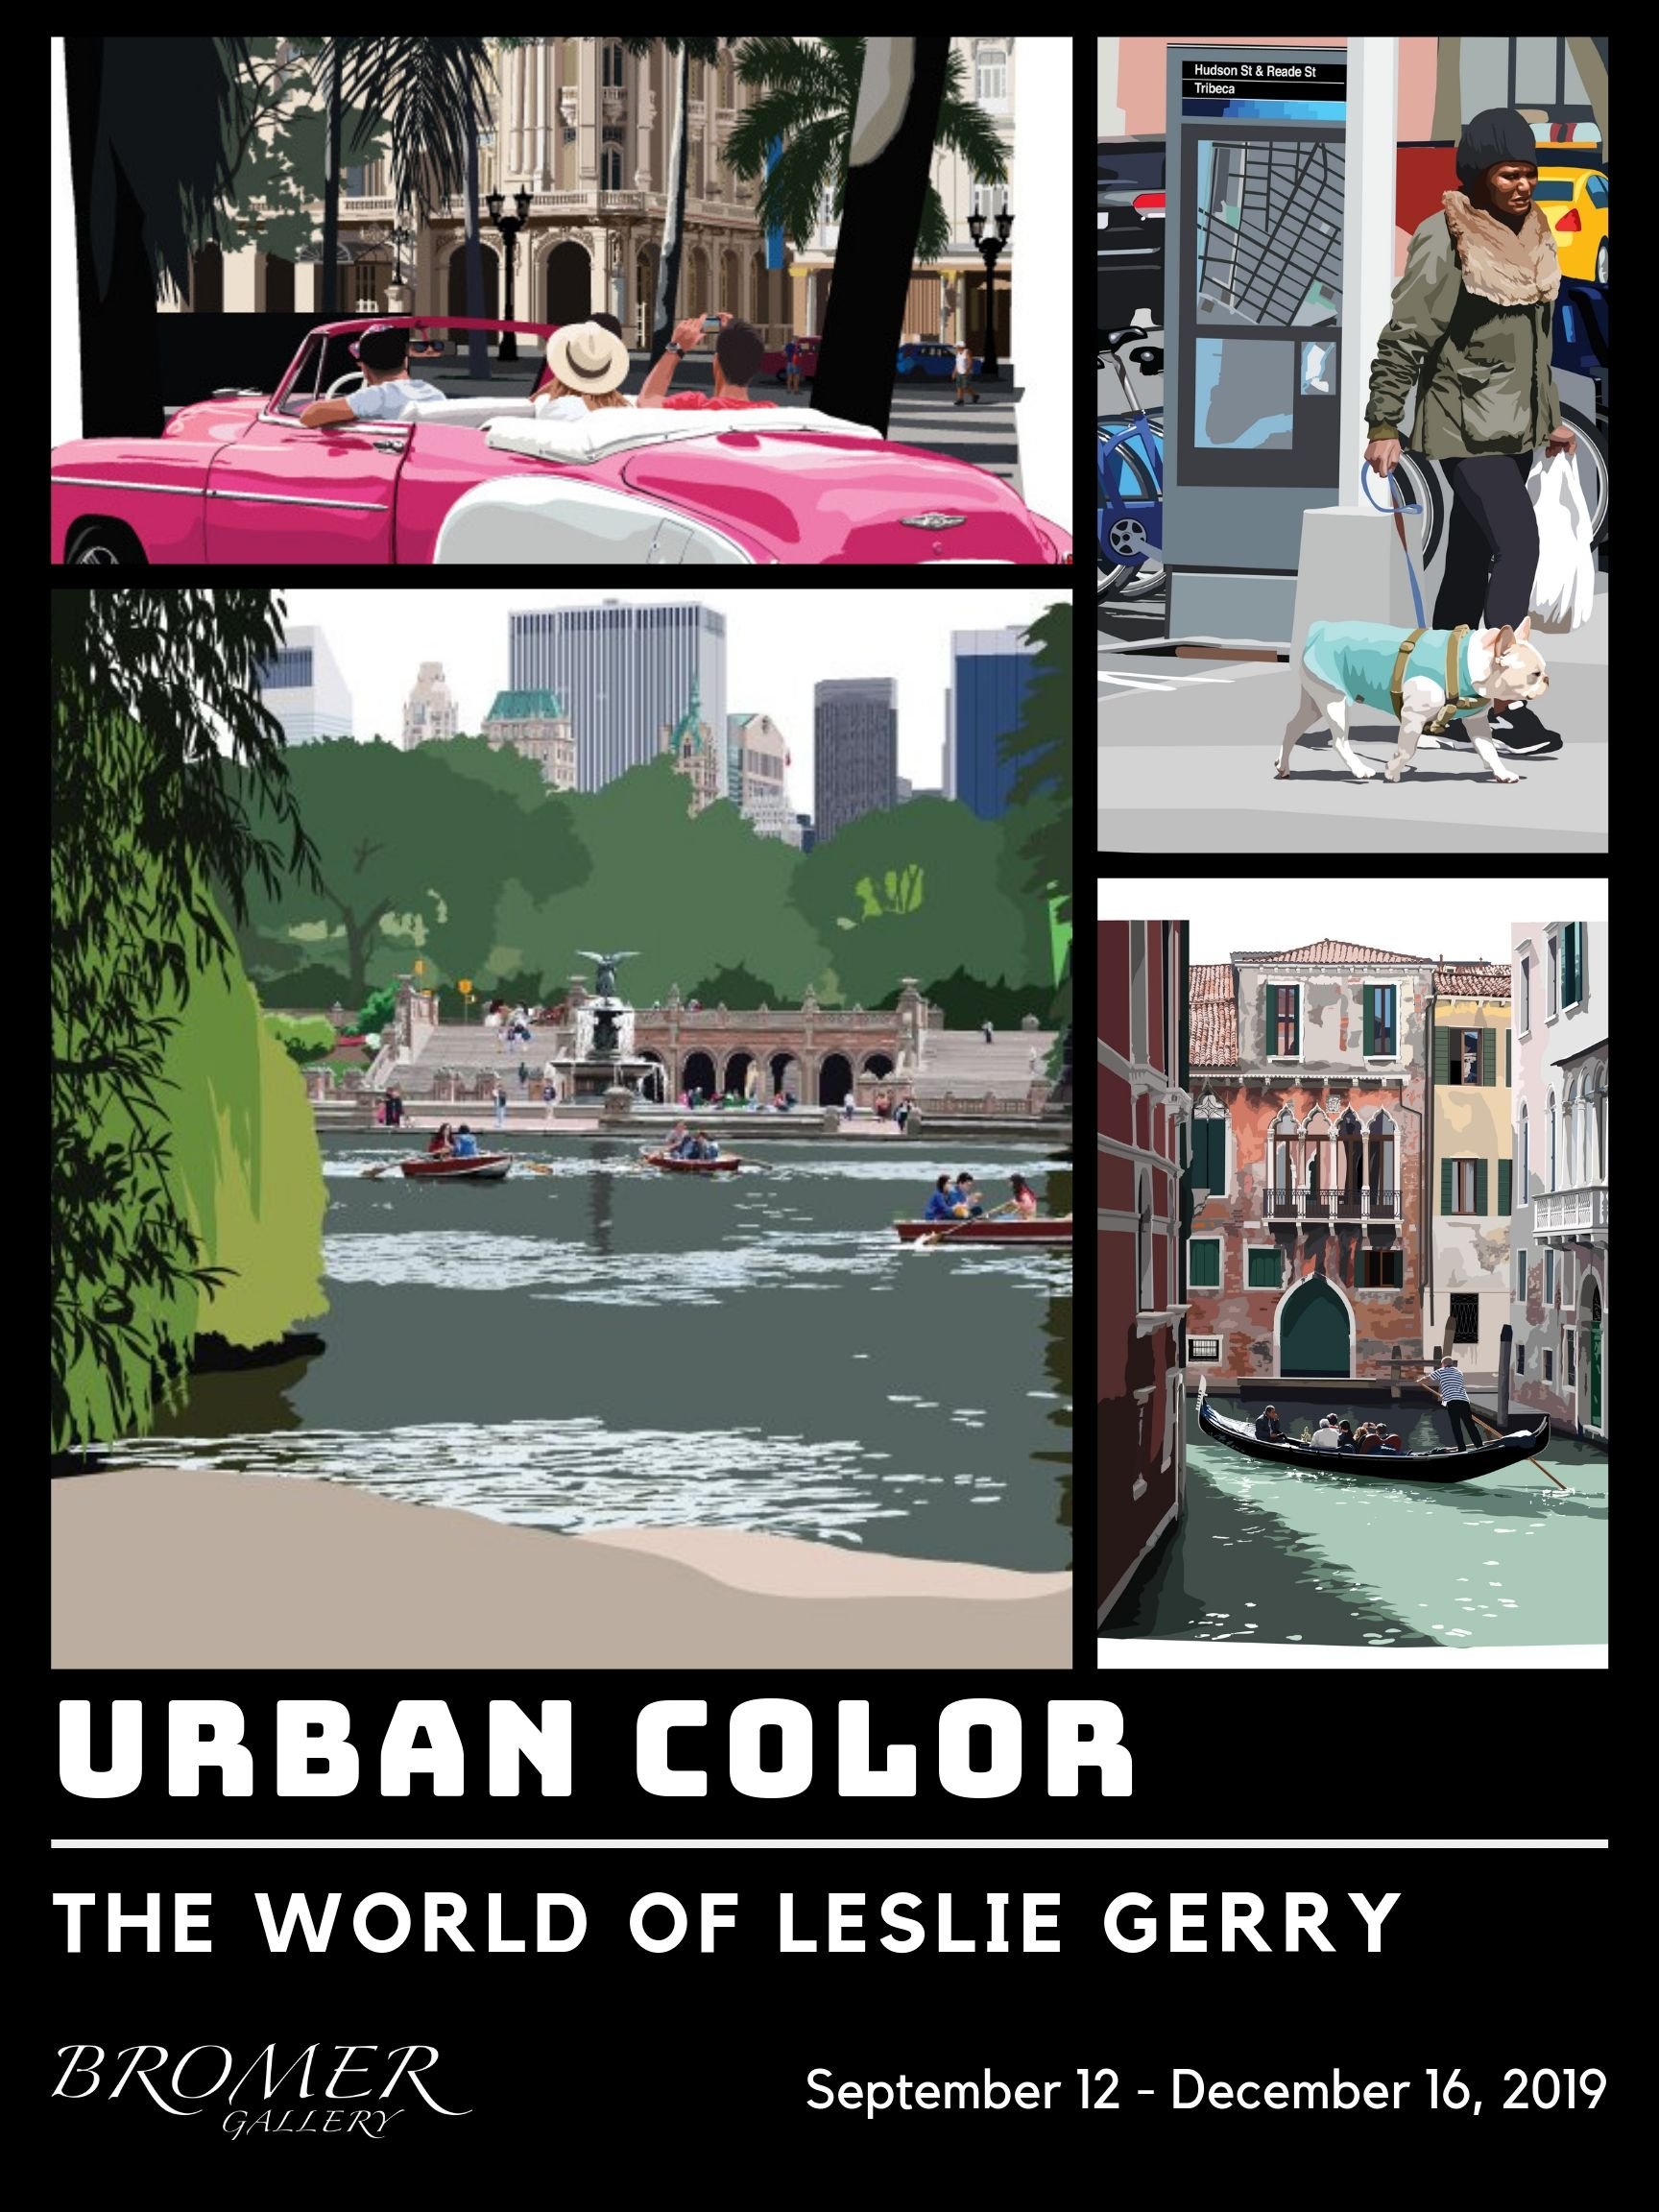 Urban Color: The World of Leslie Gerry